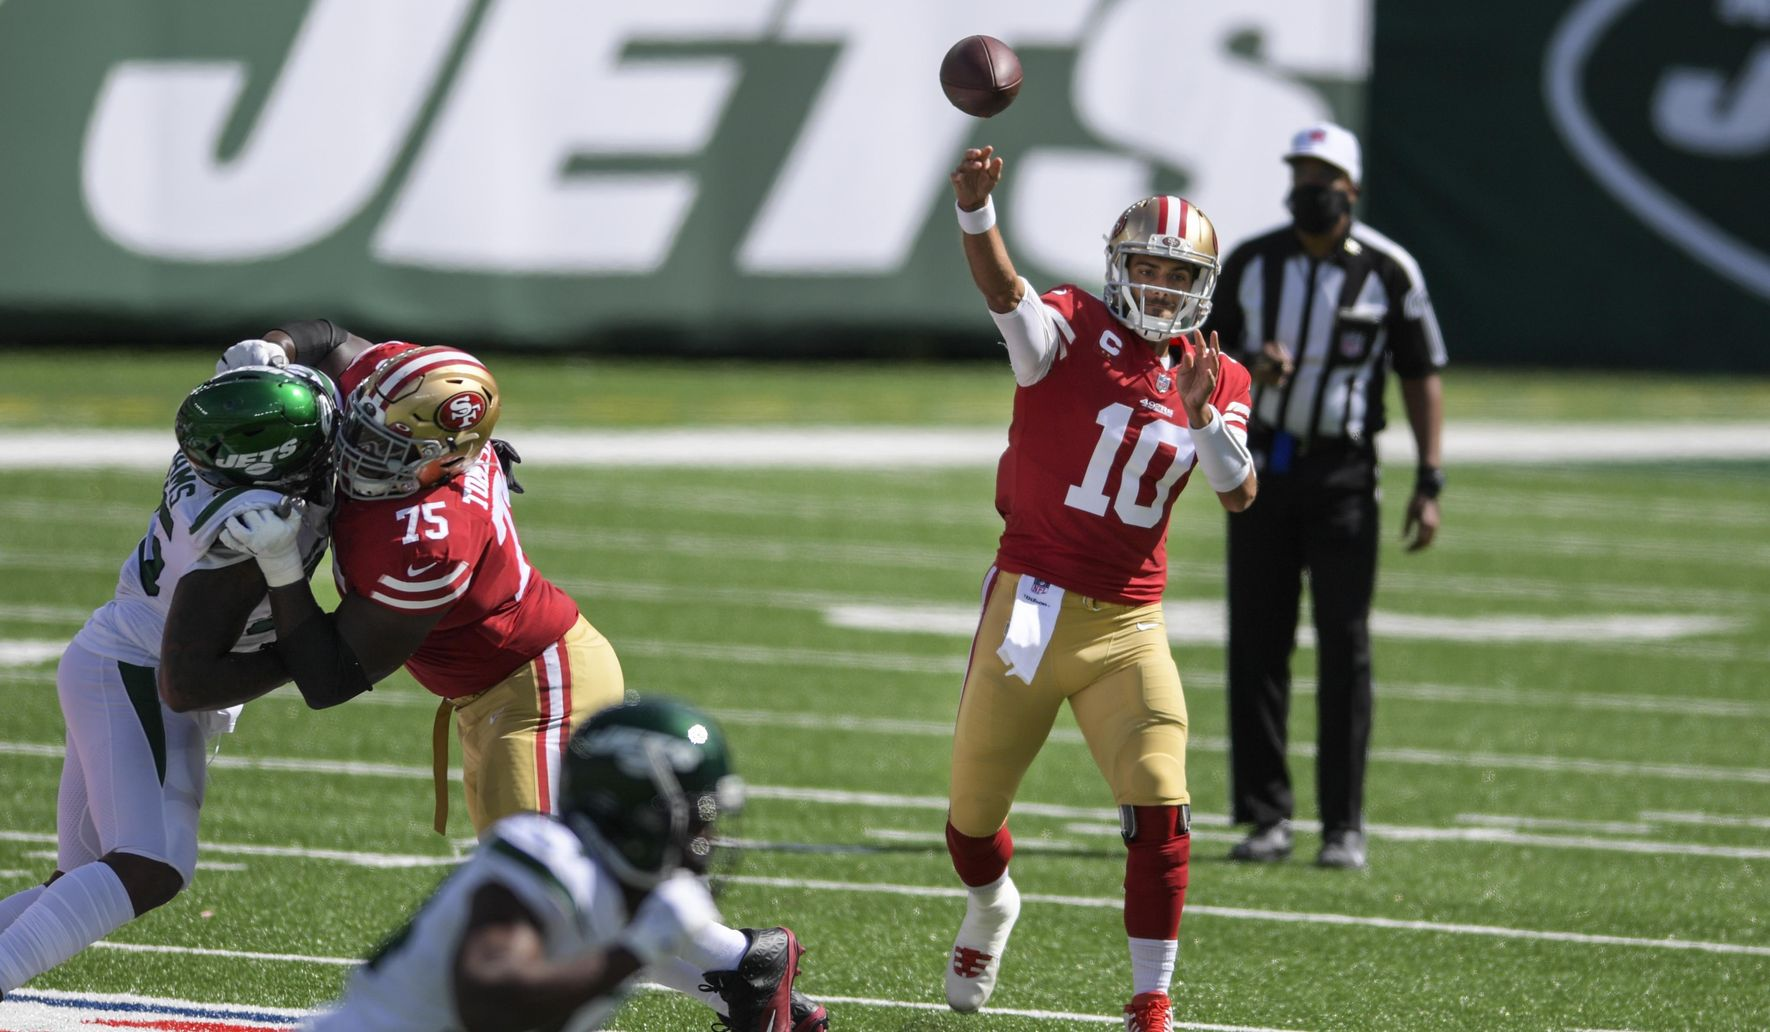 49ers_jets_football_14623_c0-171-4079-2549_s1770x1032